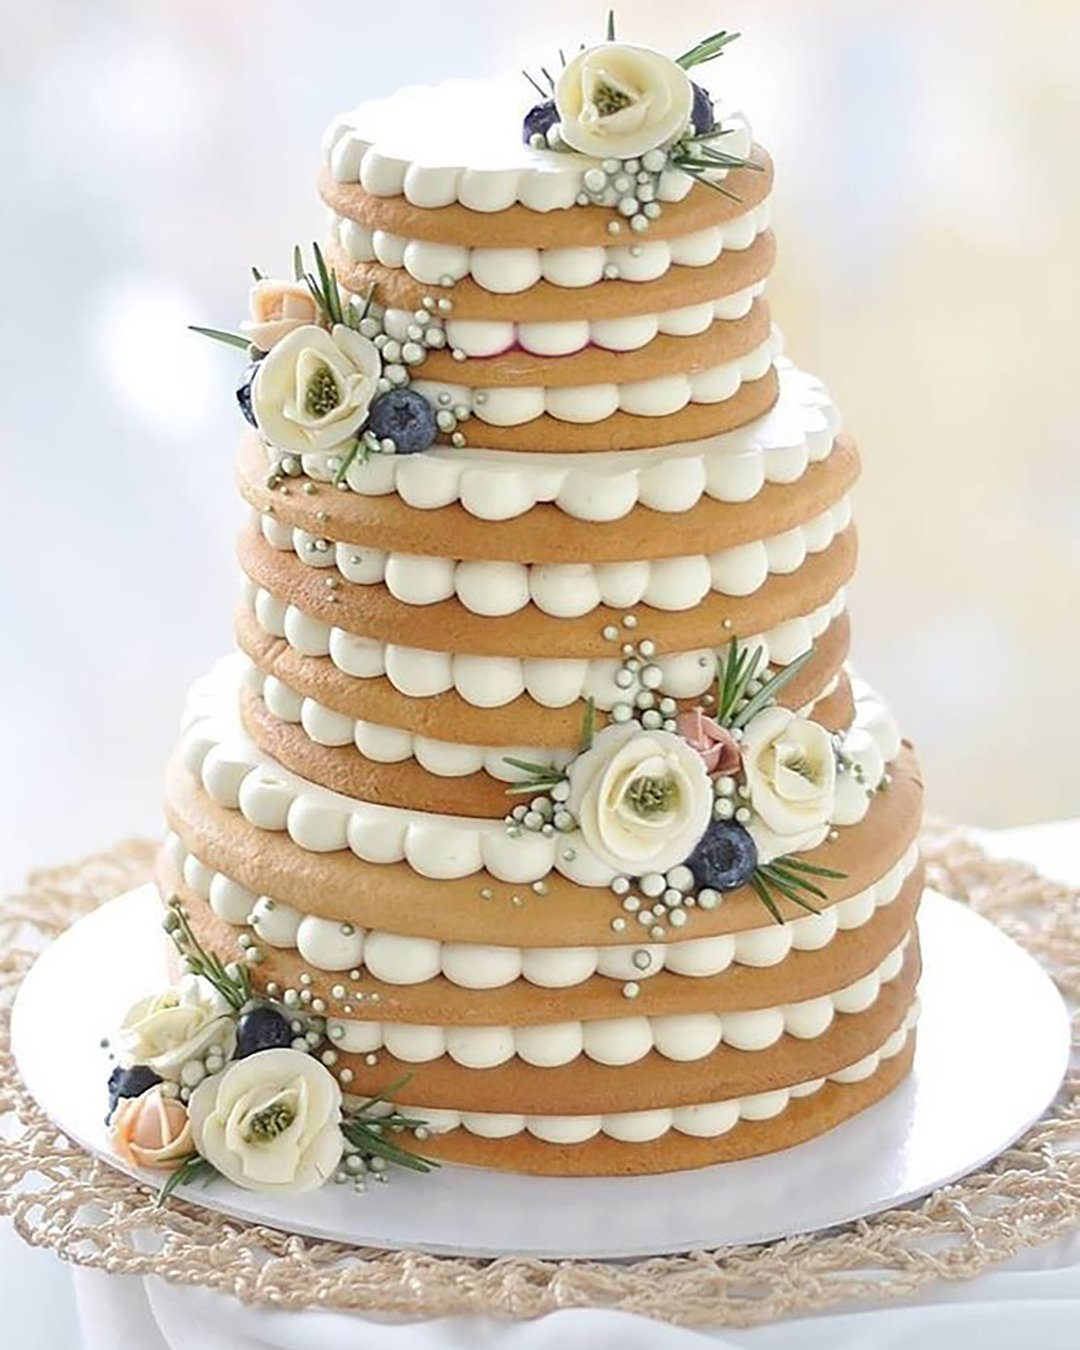 non traditional wedding dessert ideas tired cake with white cream flowers vkusnoisladko